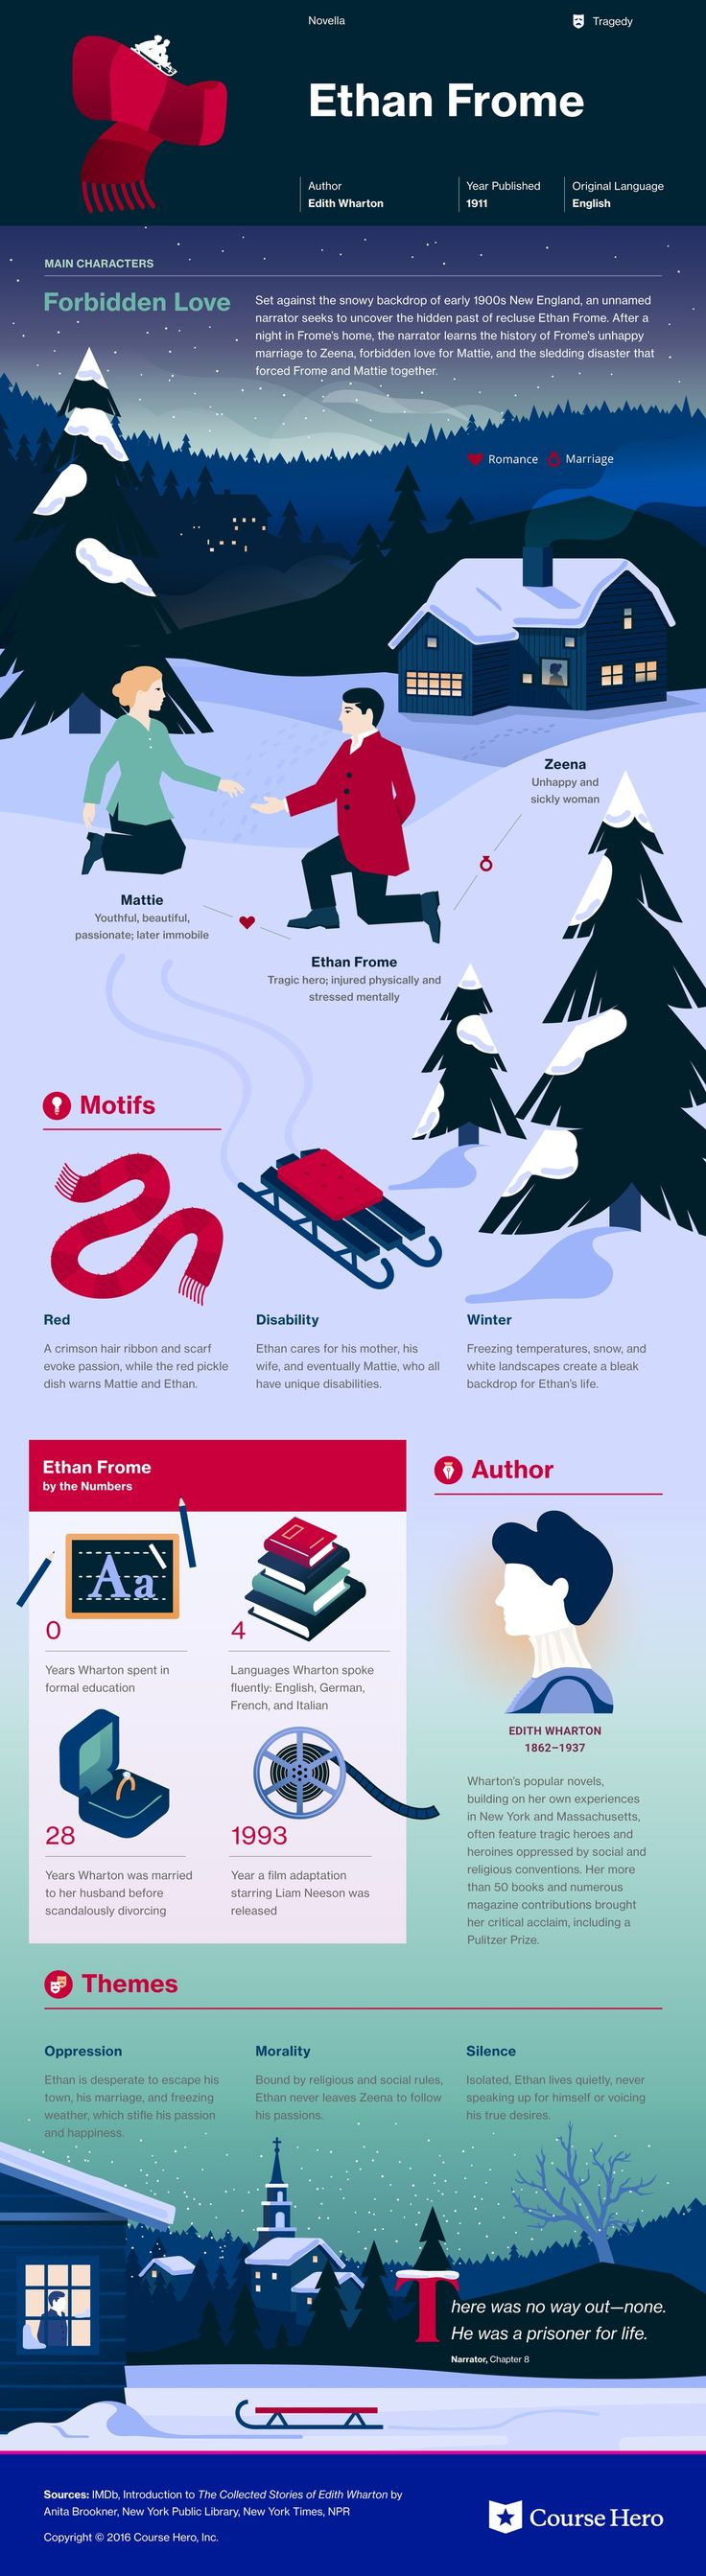 best ideas about ethan frome literature book ethan frome infographic course hero